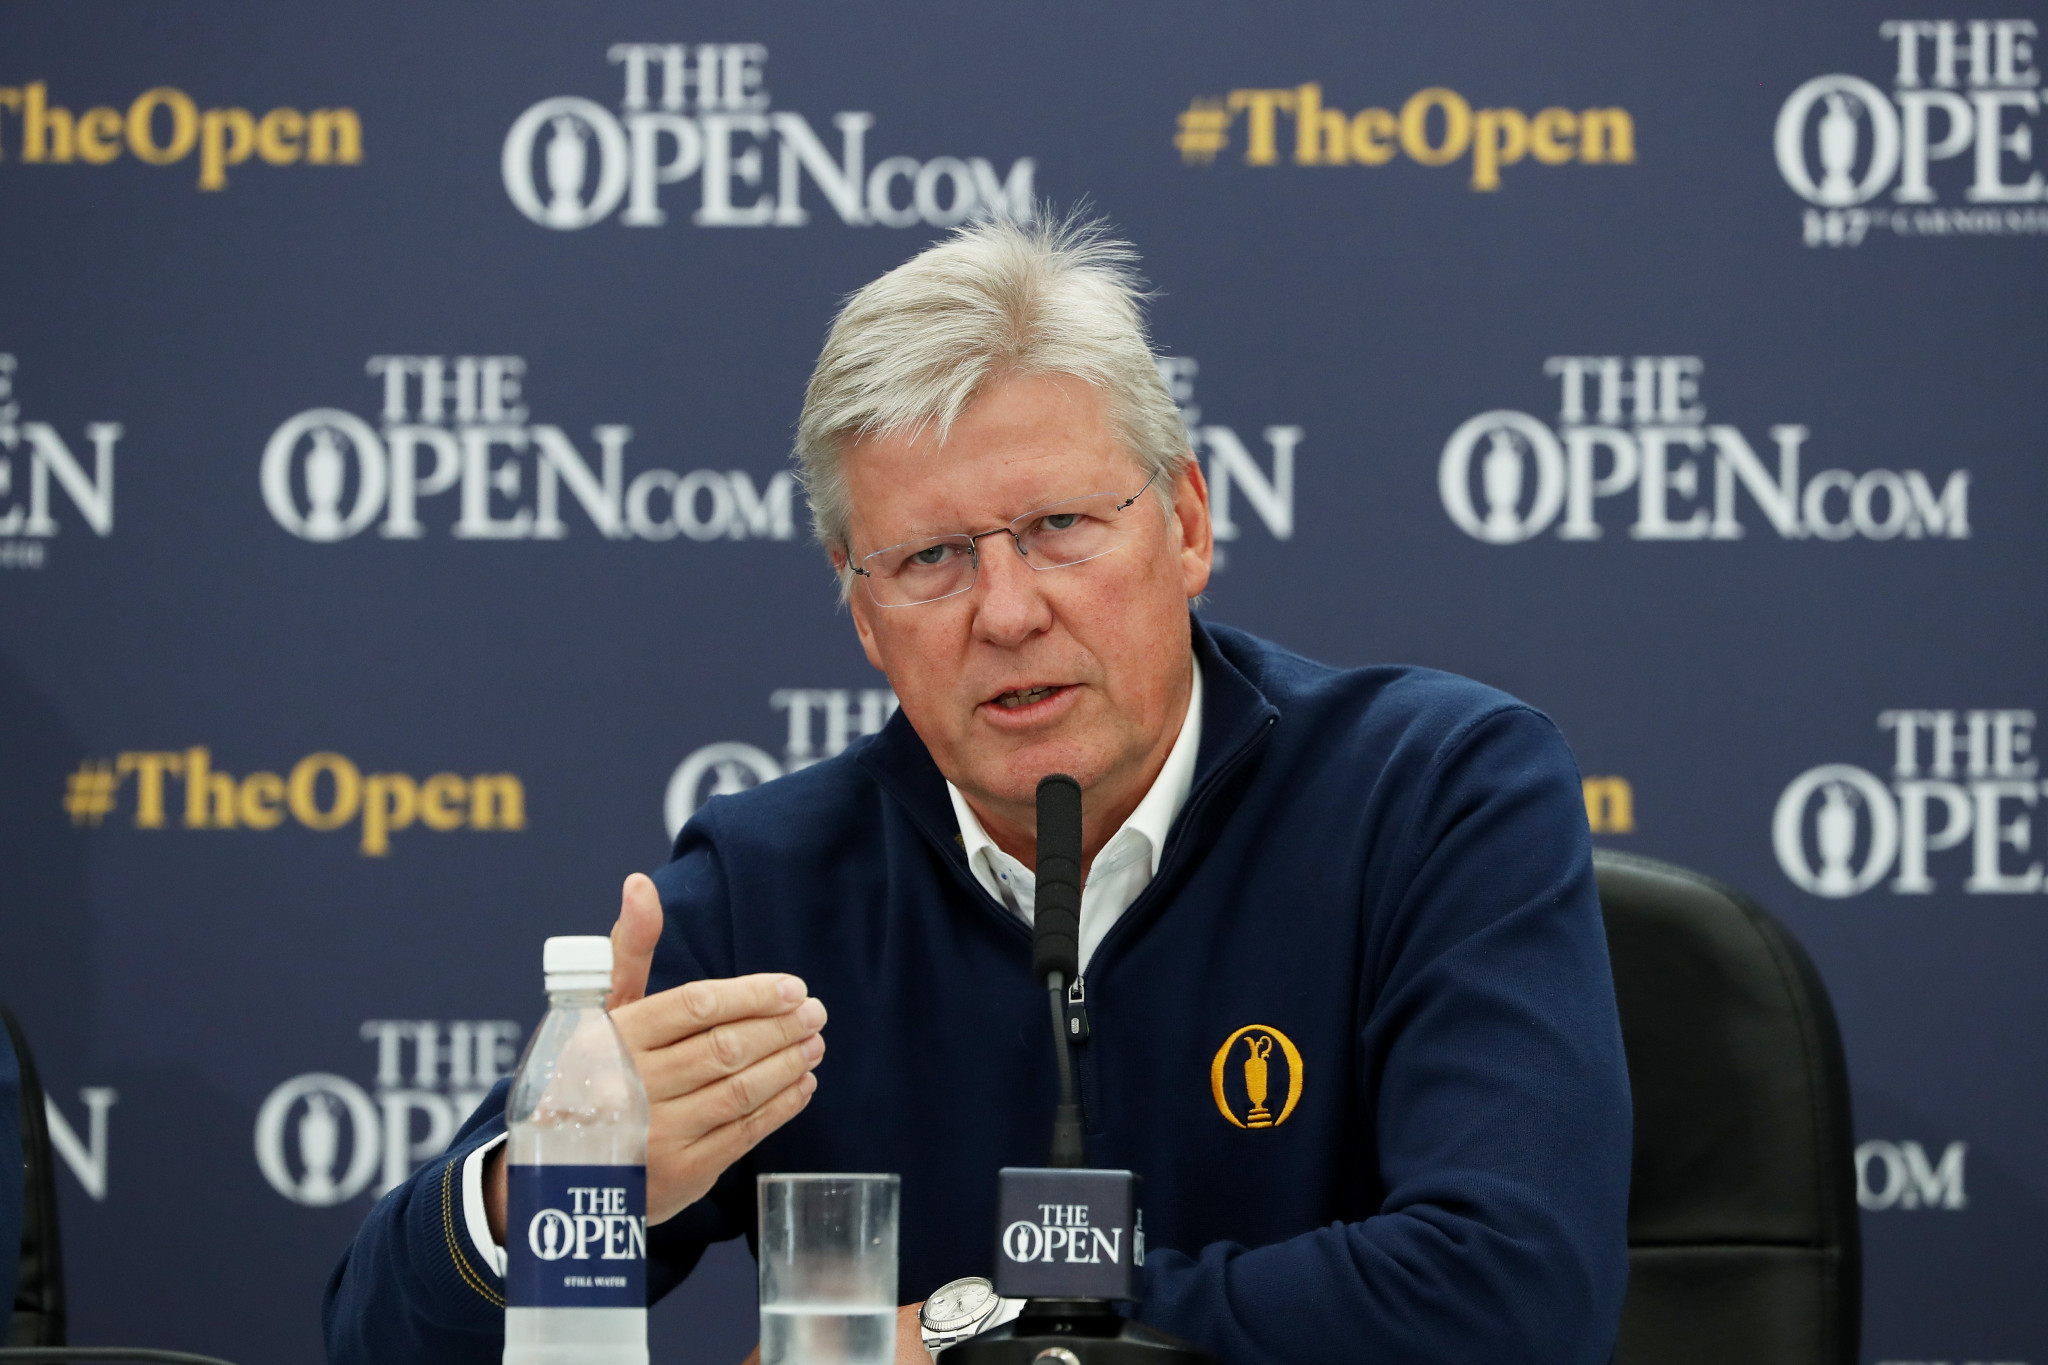 Open Championship organisers set to make extra tickets available